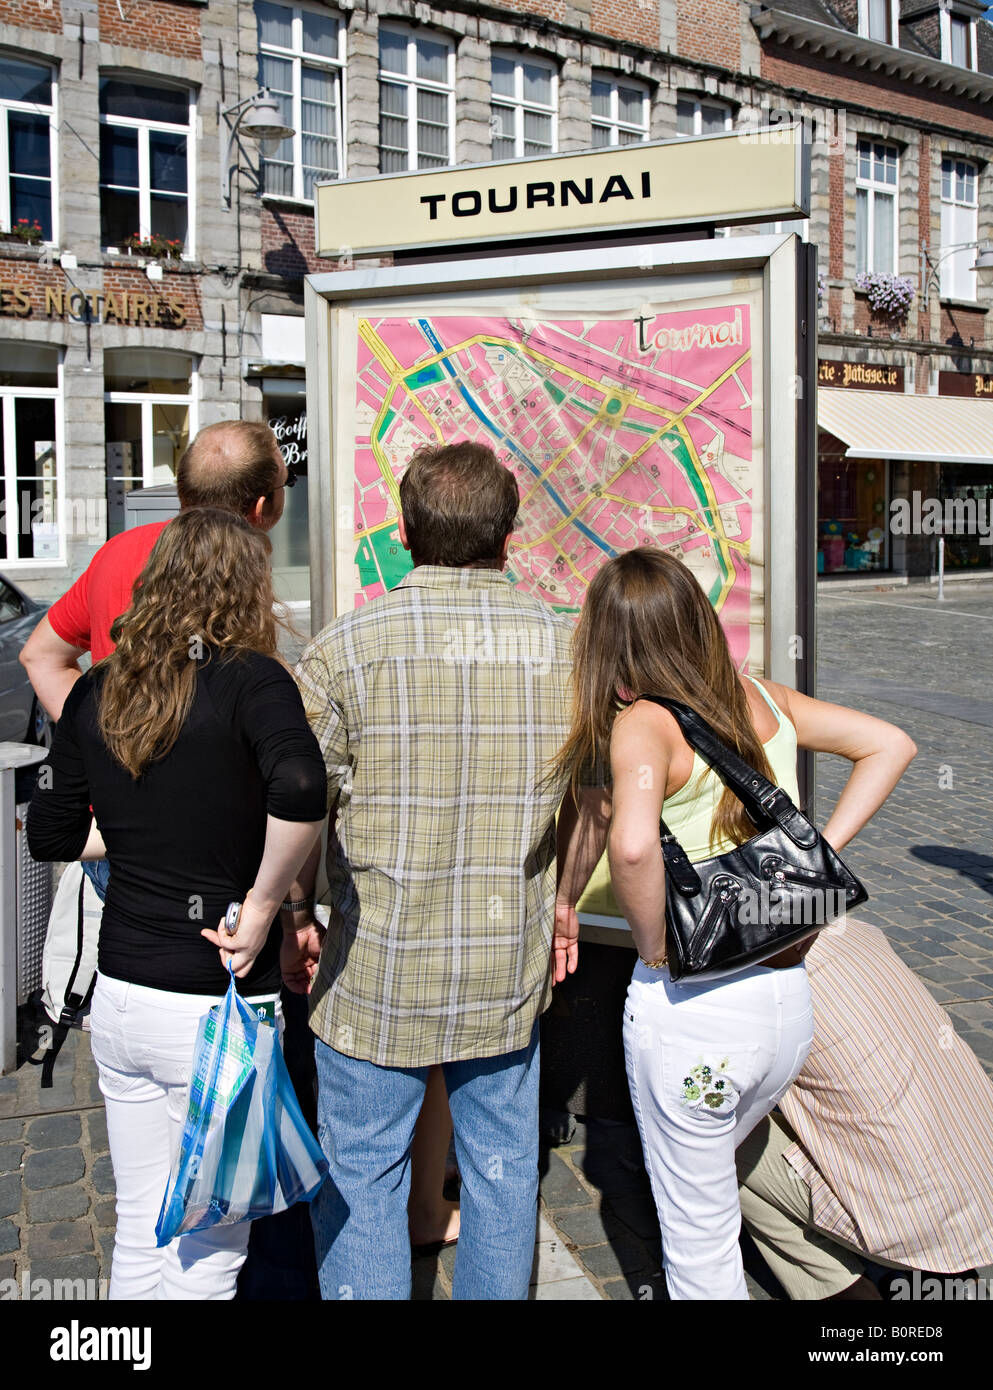 People gathered around town map Tournai Belgium - Stock Image